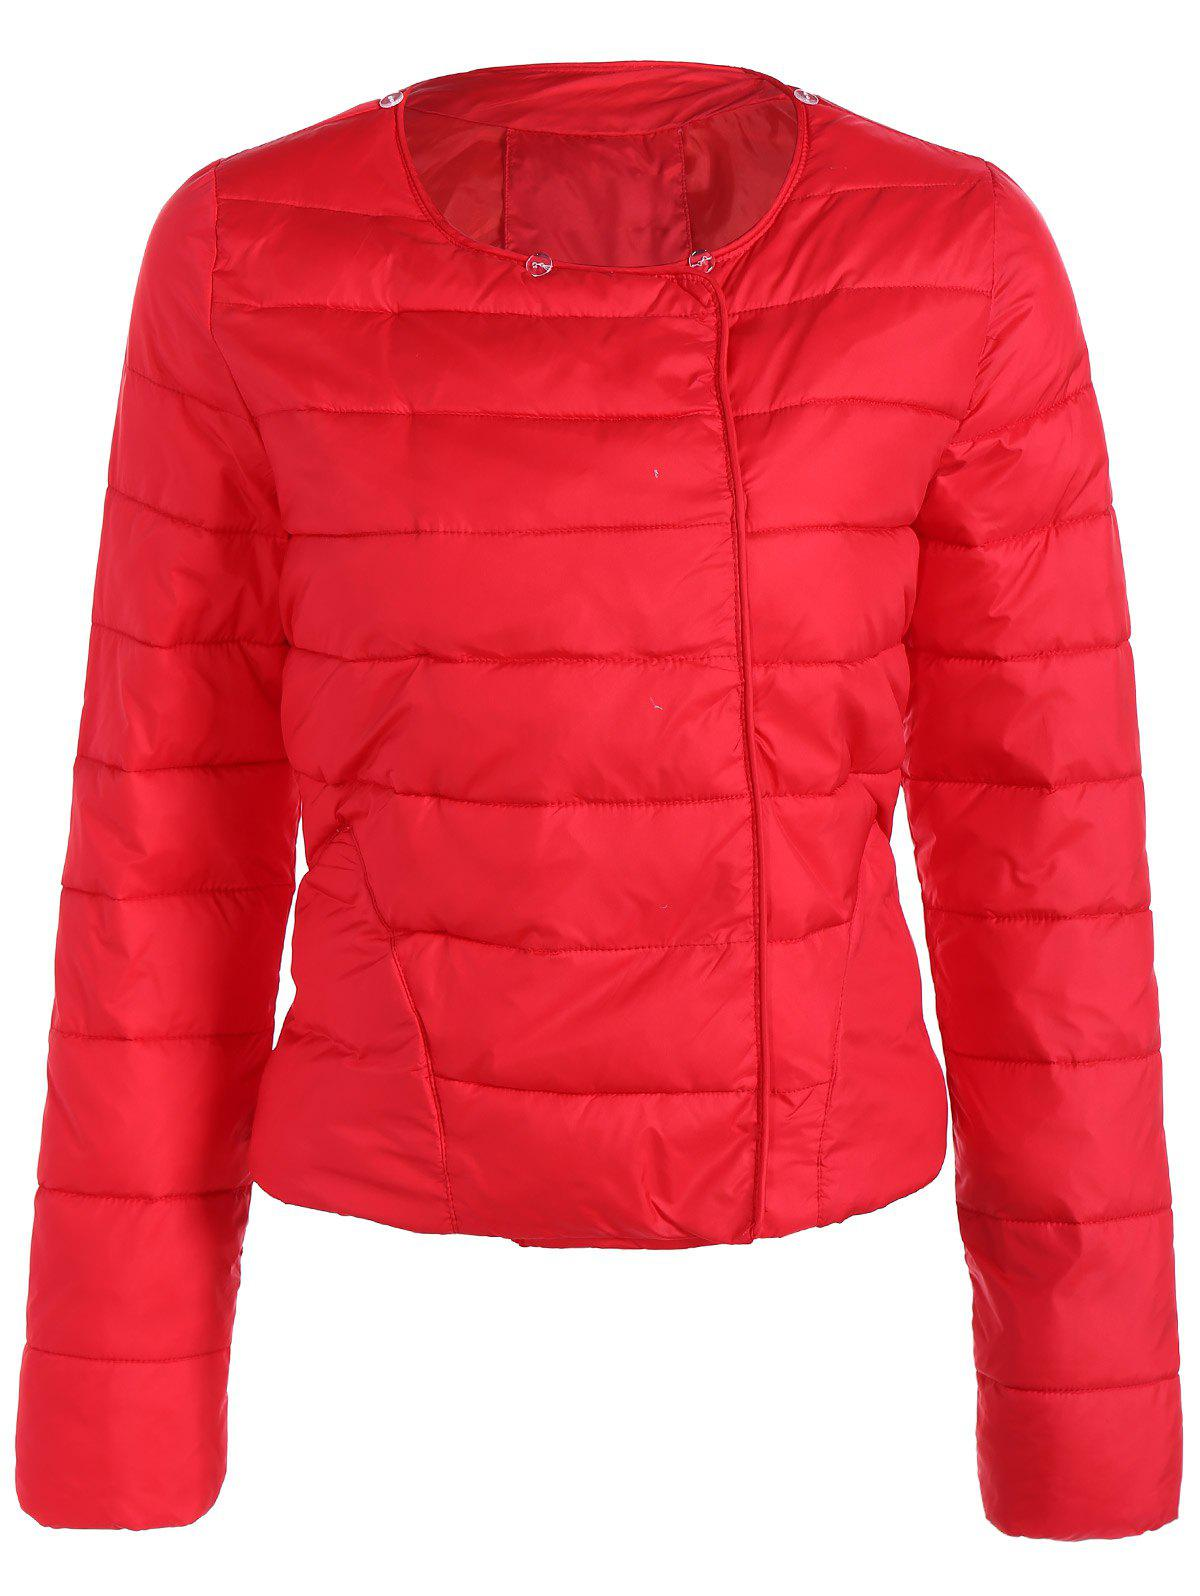 Double Pocket Short Padded JacketWomen<br><br><br>Size: M<br>Color: RED